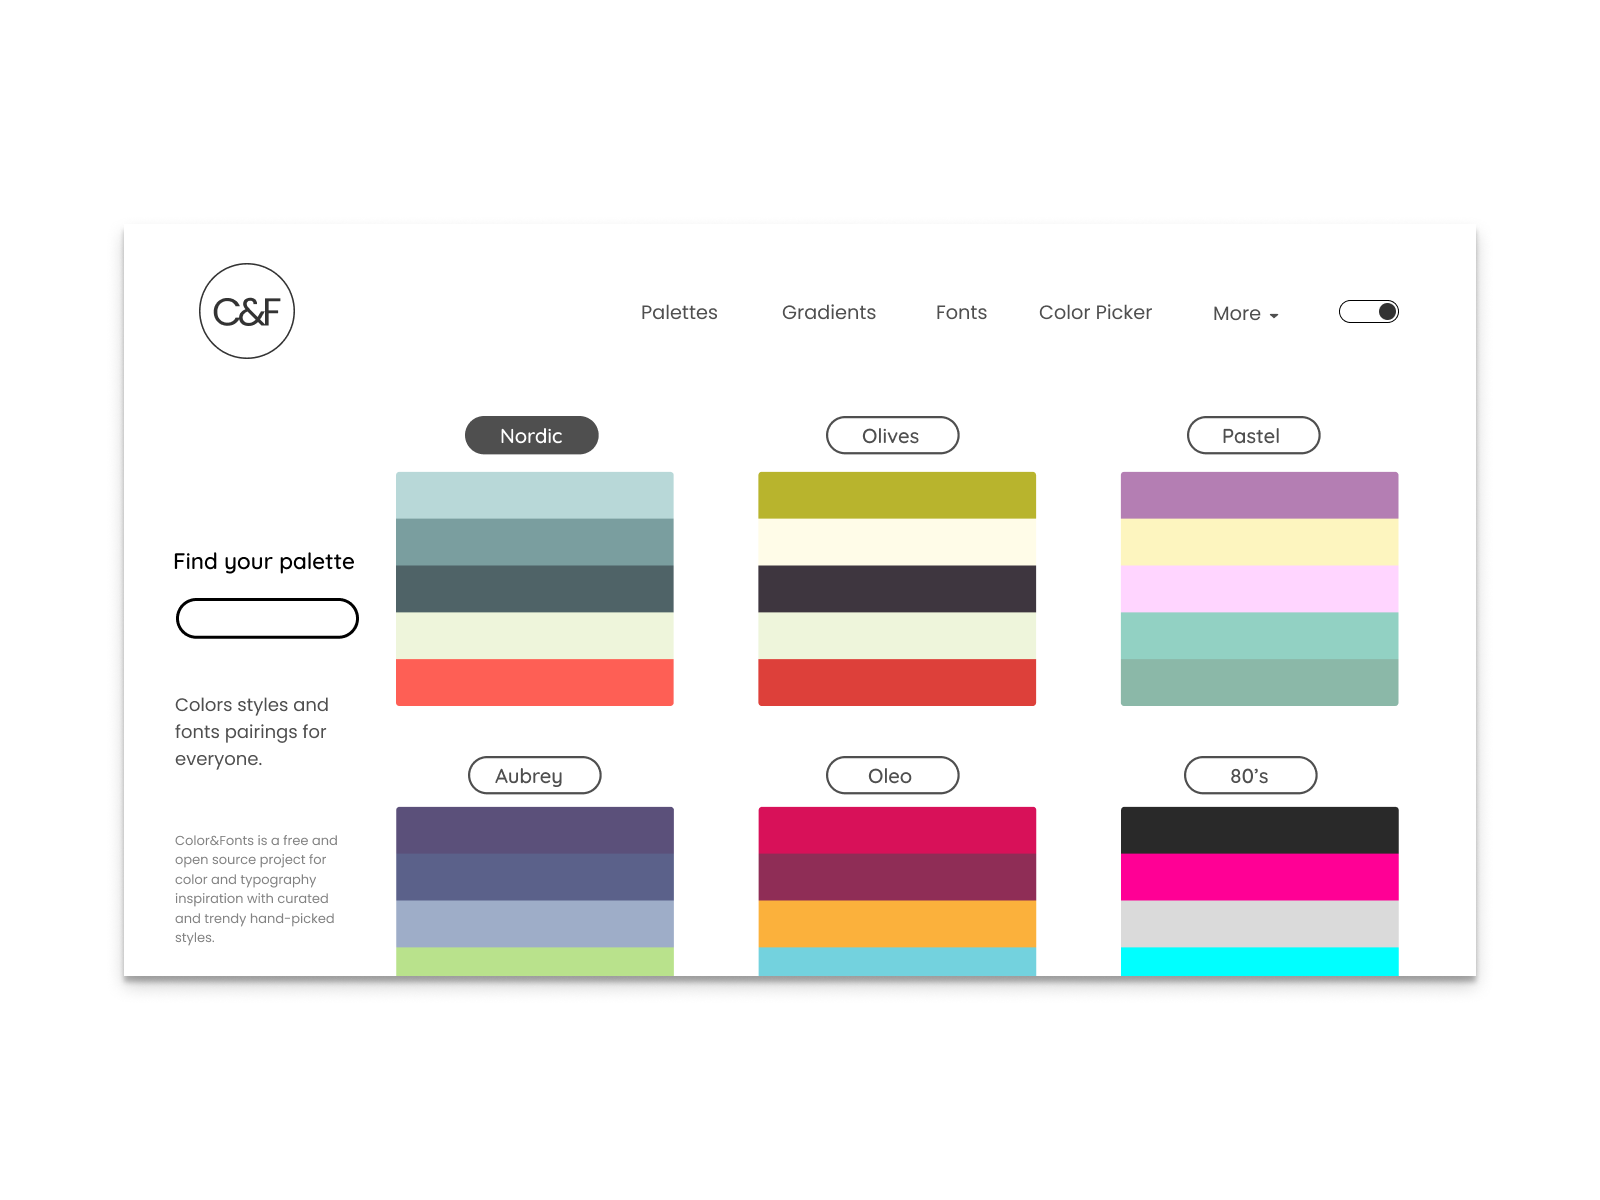 Hot new product on Product Hunt Colors & Fonts Stunning